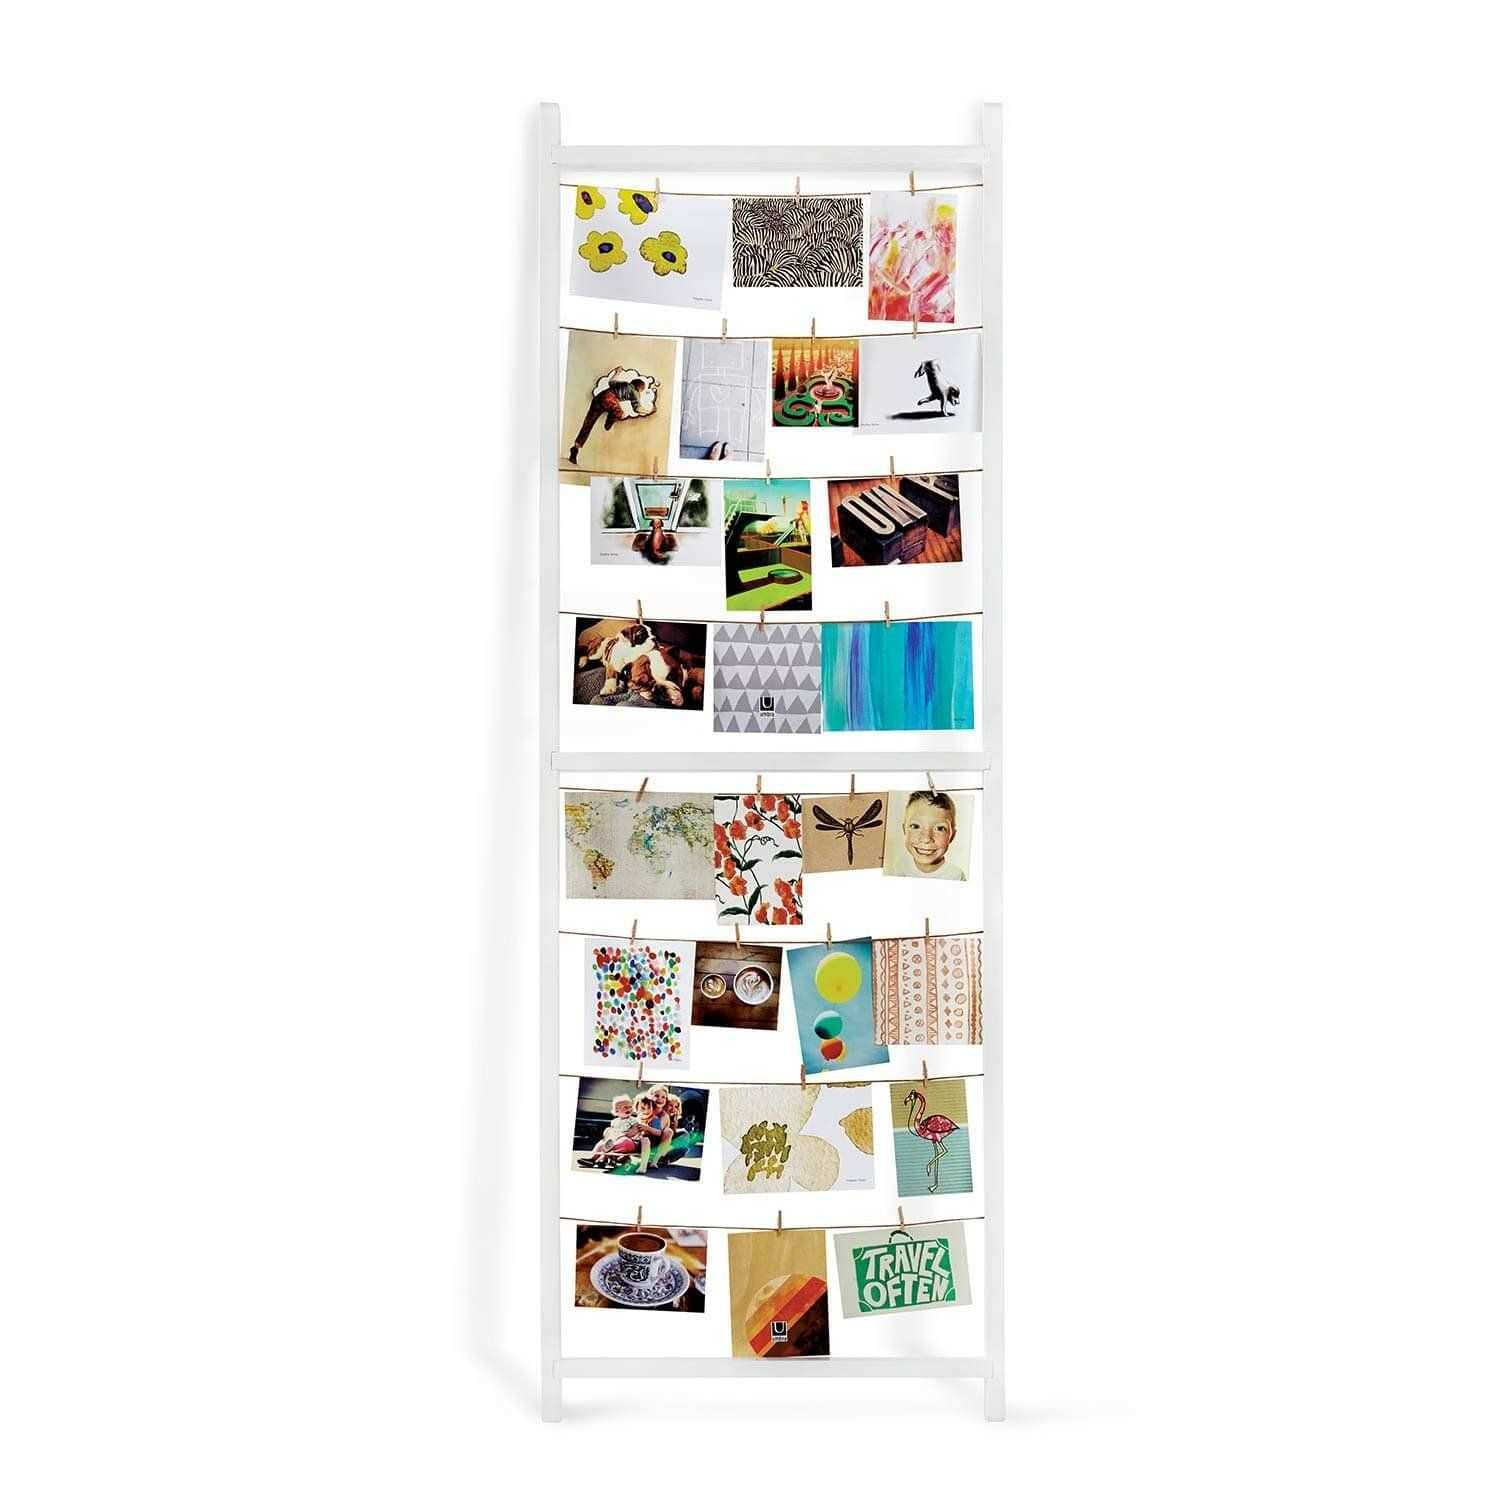 Memory Overload Collect All Of Your Favorite Memories And Photo In One Place With This Unique Display Organ Photo Displays Multi Photos Frame Photo Frame Wall